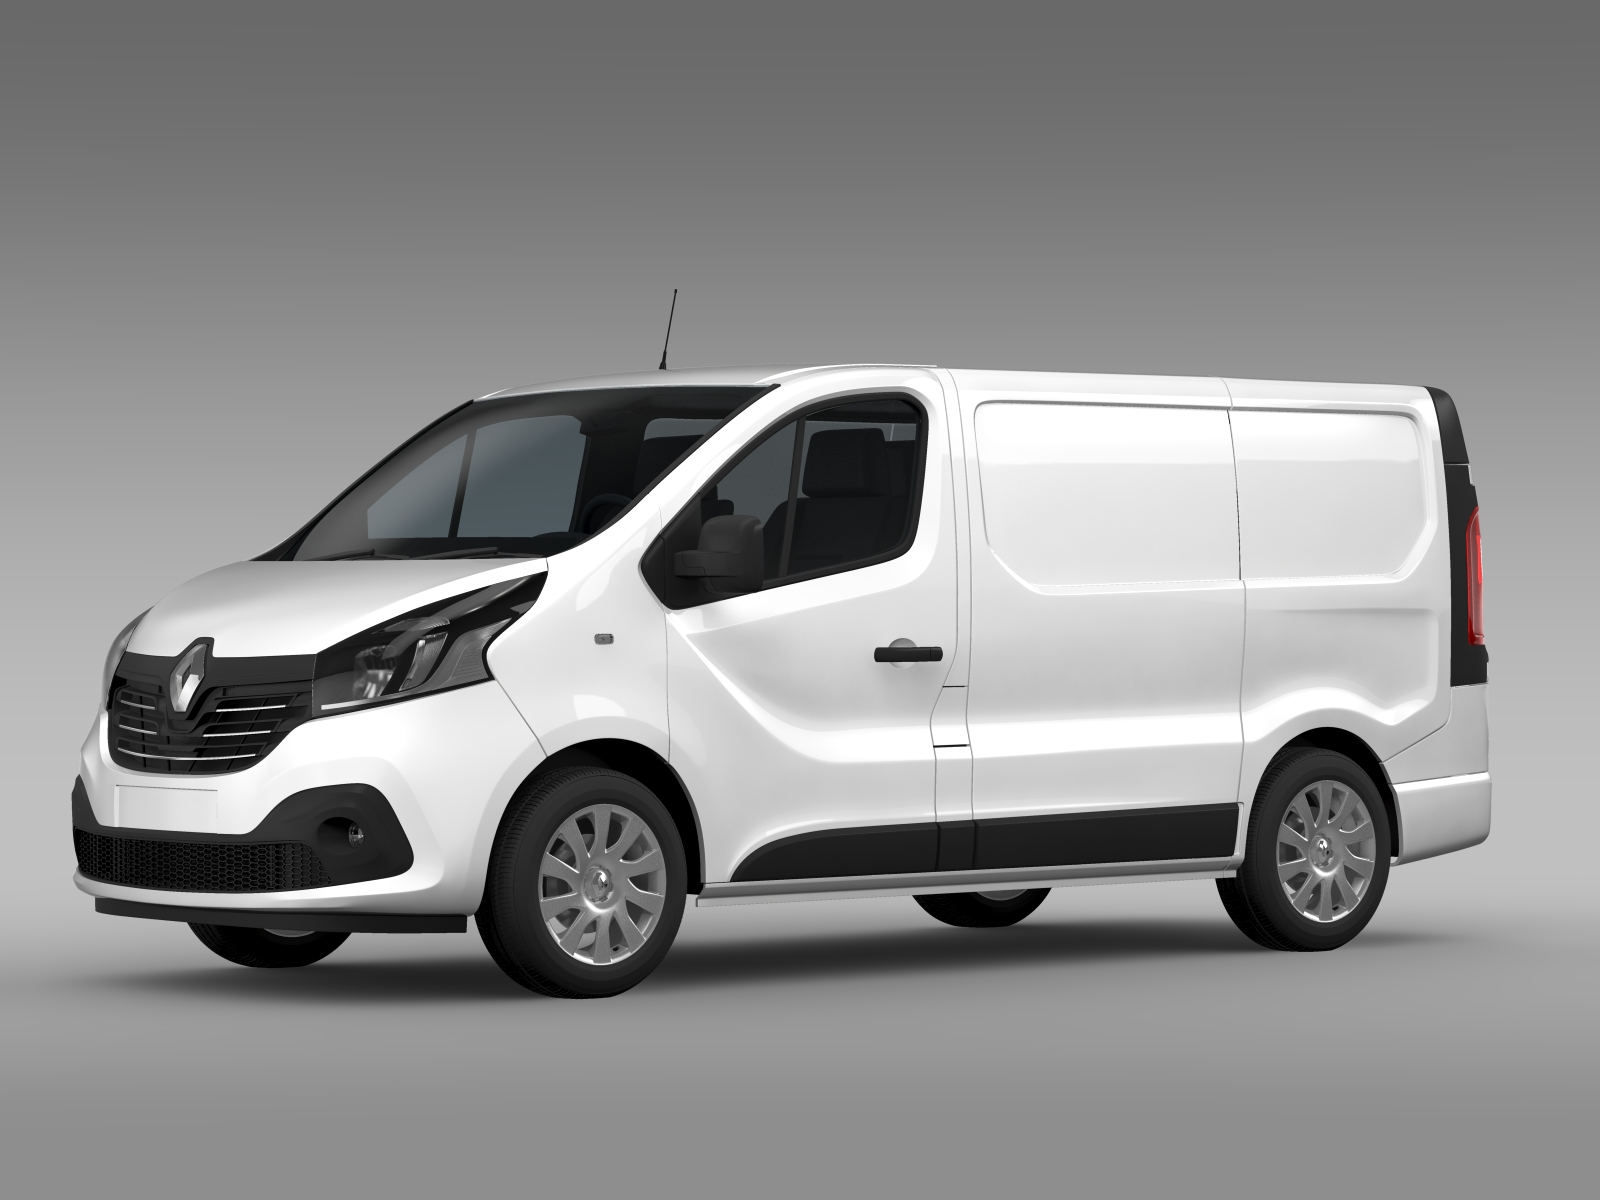 renault trafic van 2015 3d model buy renault trafic van 2015 3d model flatpyramid. Black Bedroom Furniture Sets. Home Design Ideas